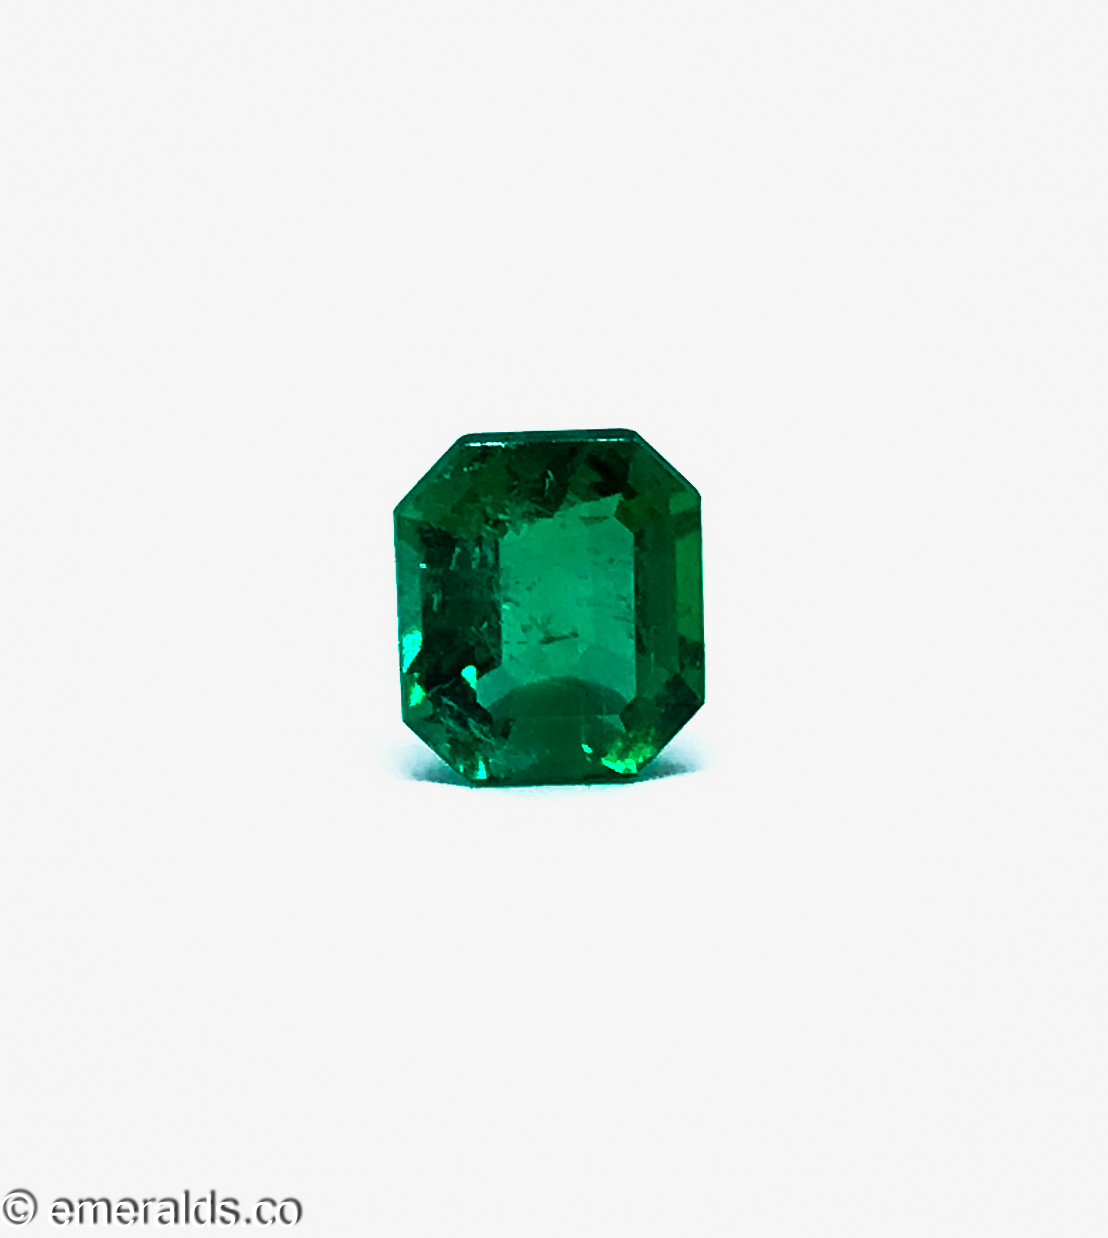 2.23 Fine Colombian Emerald Cut Minor To Moderate Vivid Green Grs